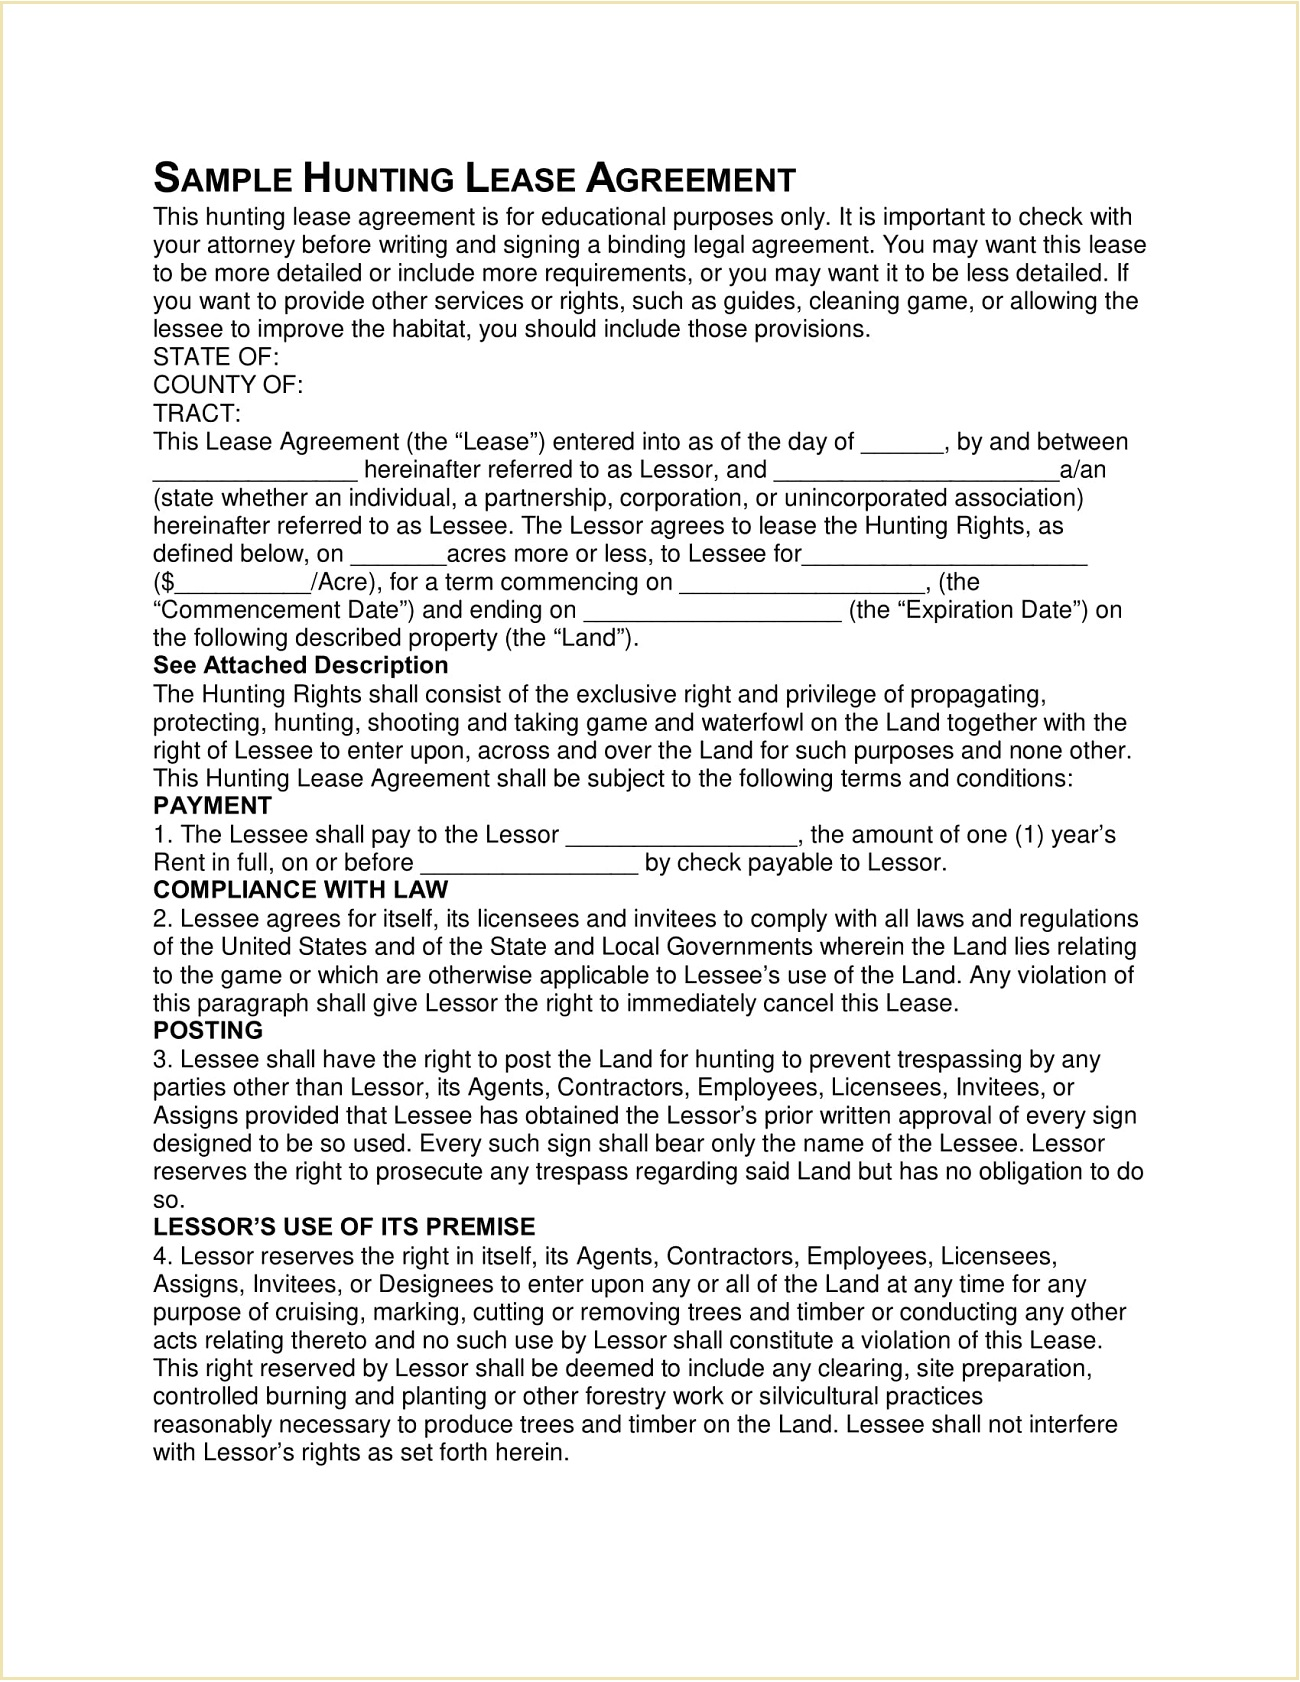 Sample Hunting Lease Agreement Template PDF